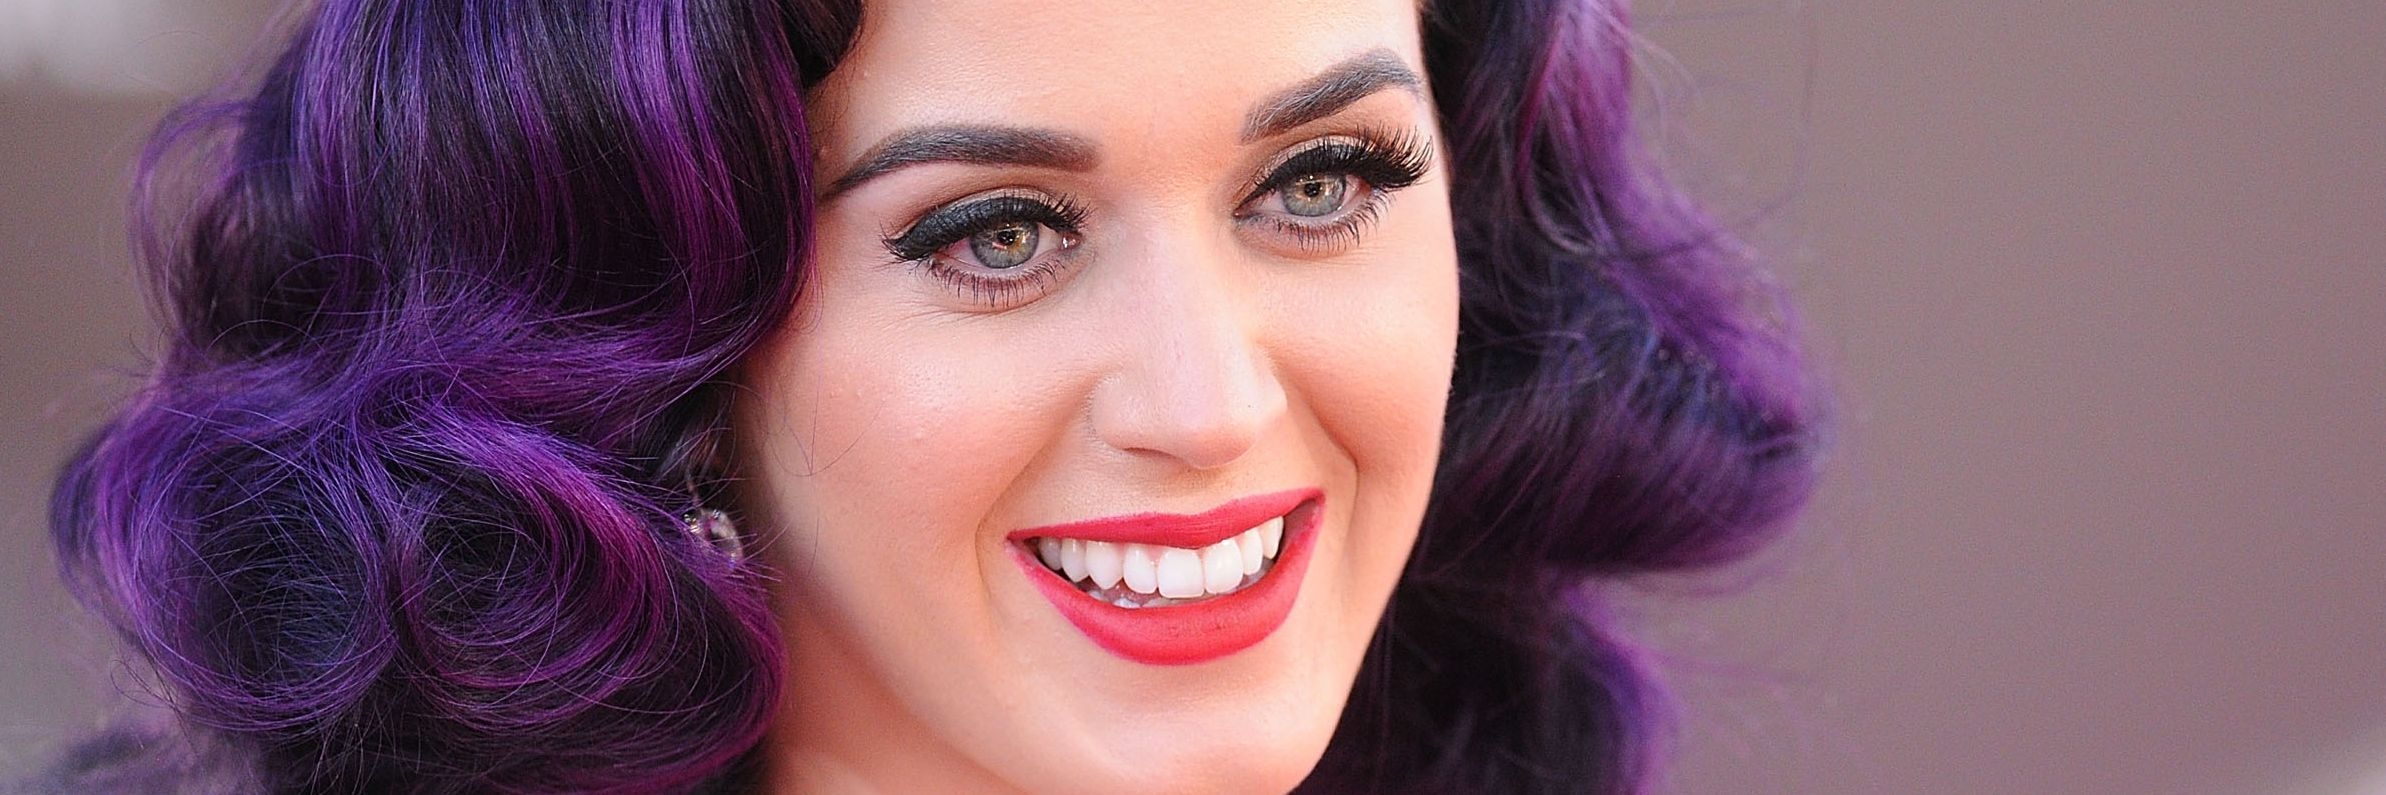 13 Secrets Nobody Tells You About Dyeing Your Hair A Crazy Color Mtv